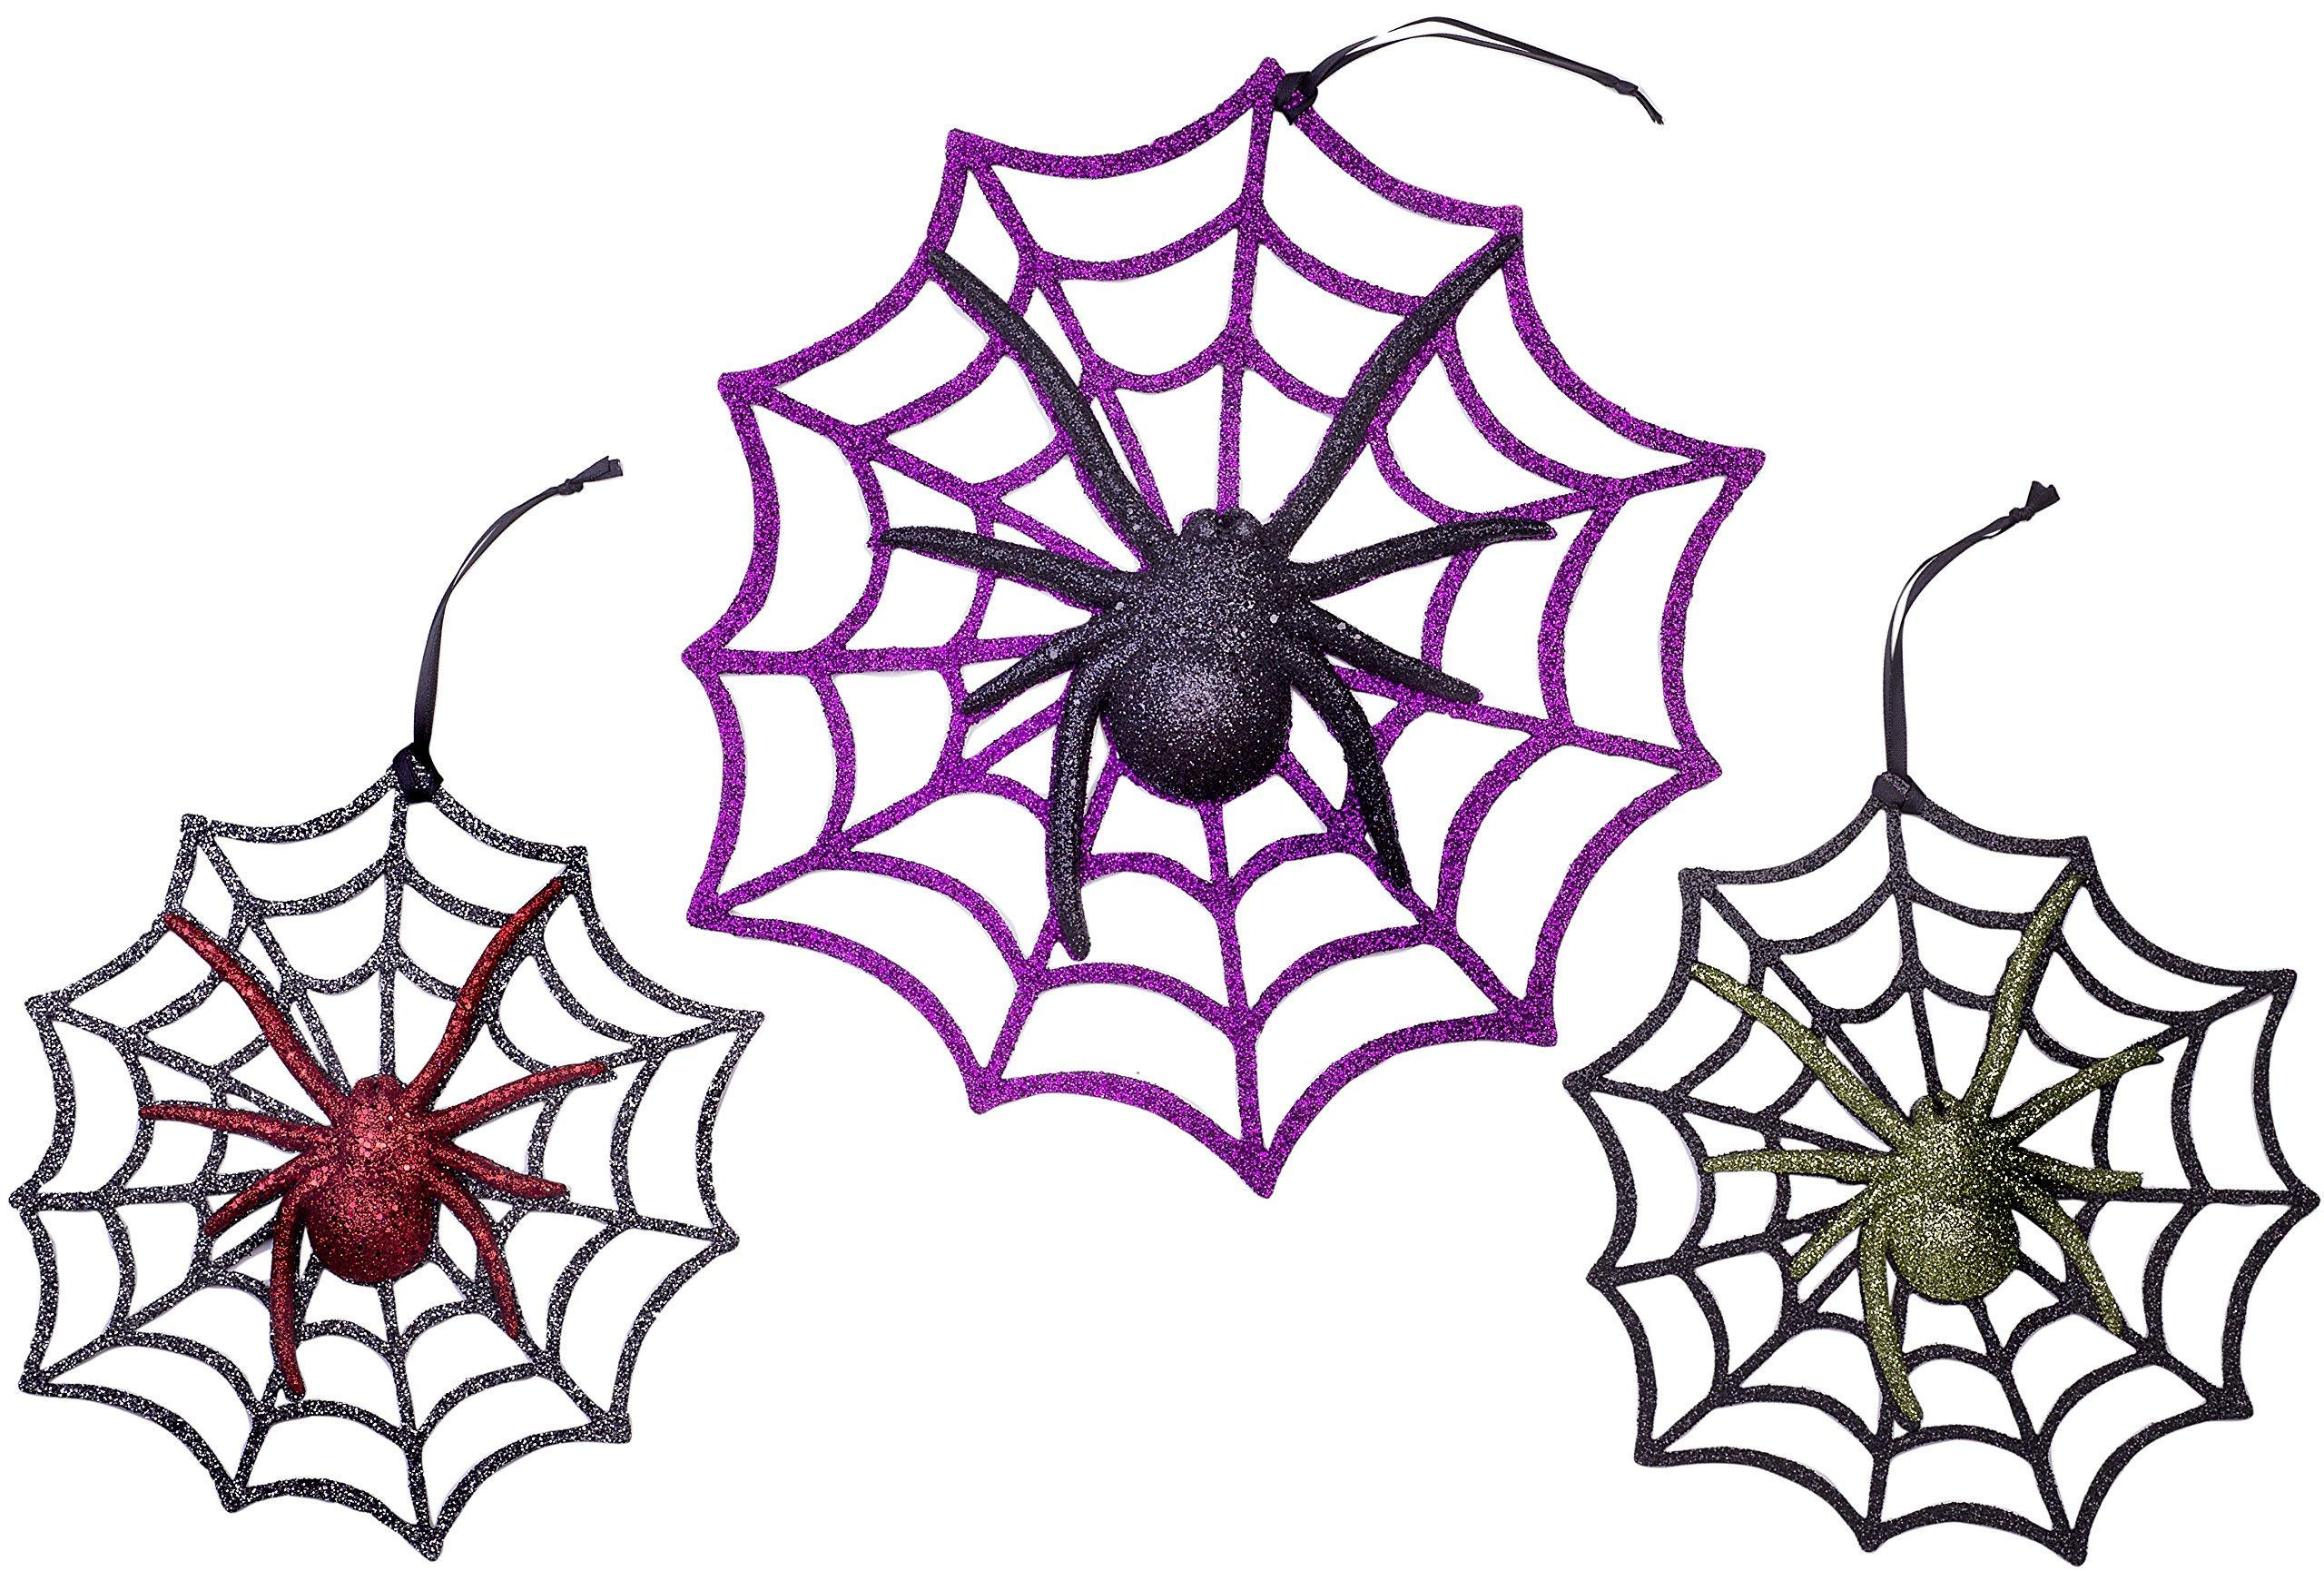 Christmas Traditions 11 inch + 8 inch Glittered Halloween Decorations for Door/Windows/ Wall Spider with Web Party Supplies Ornaments (set of 3)